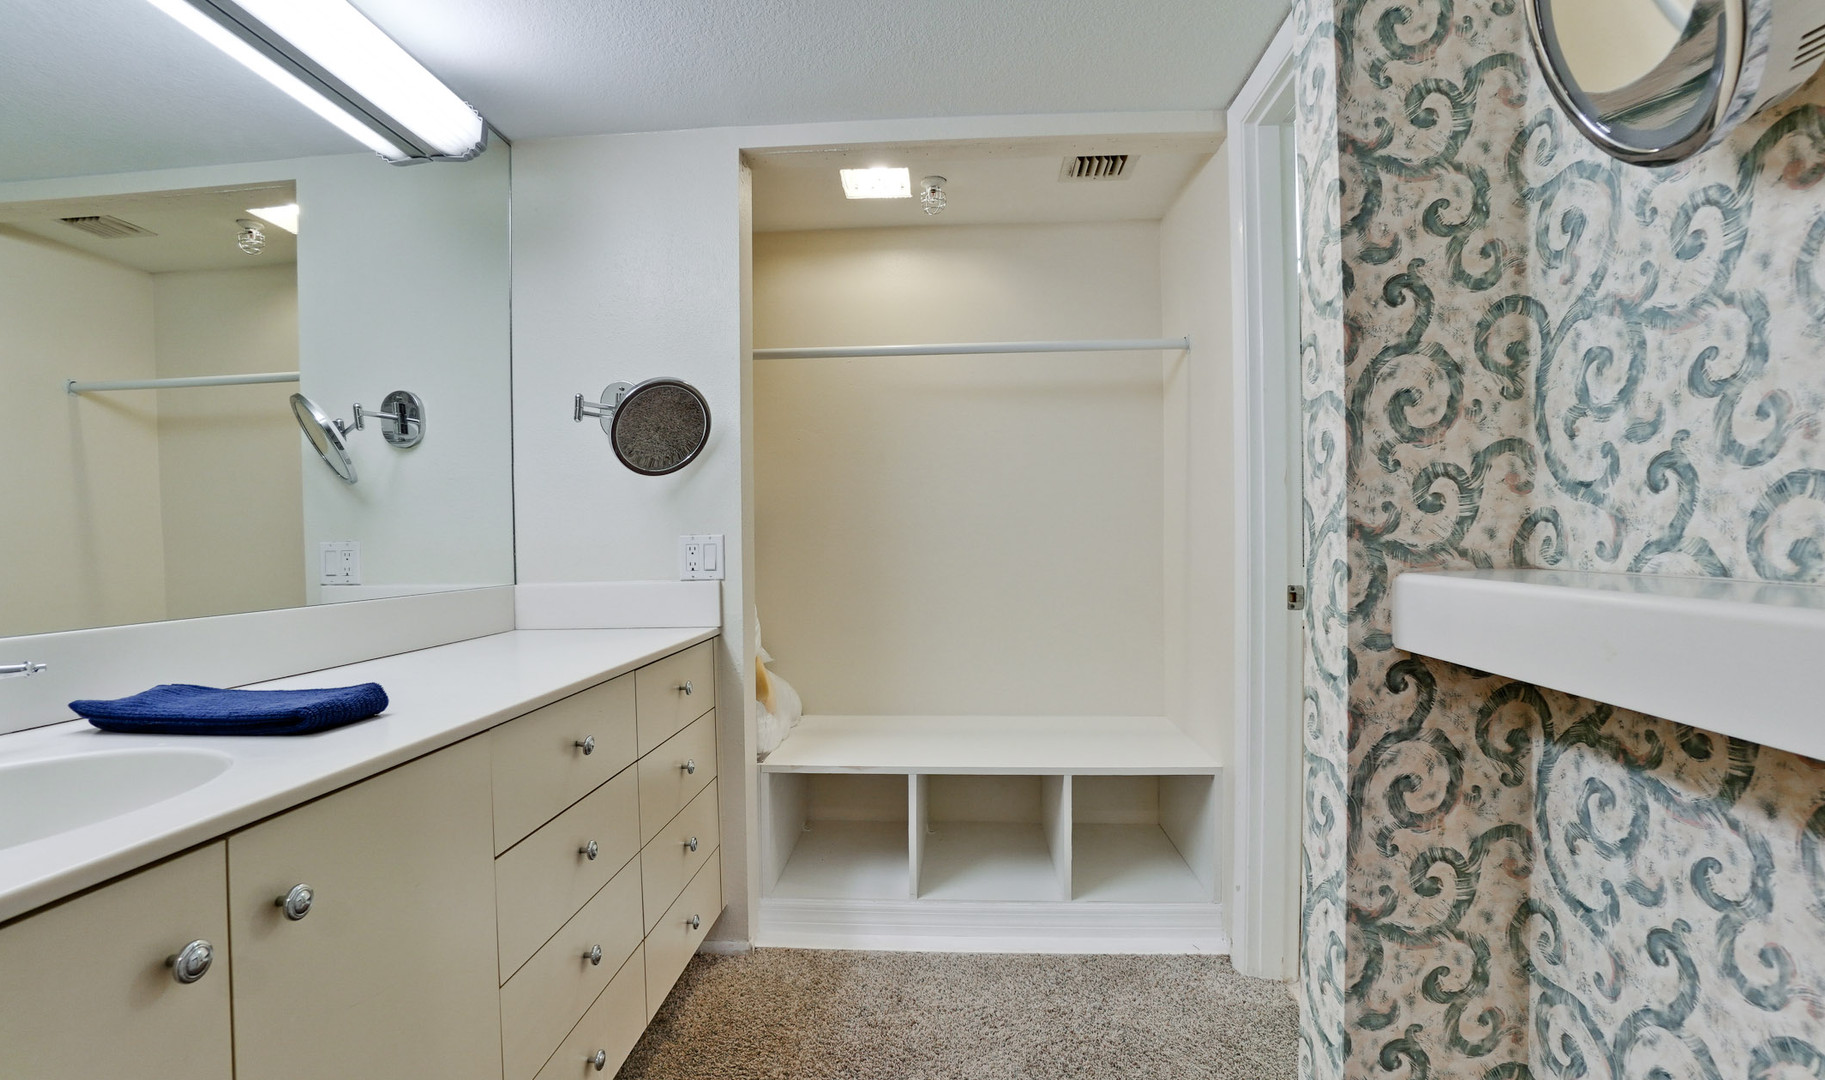 Spacious closet and extra vanity space